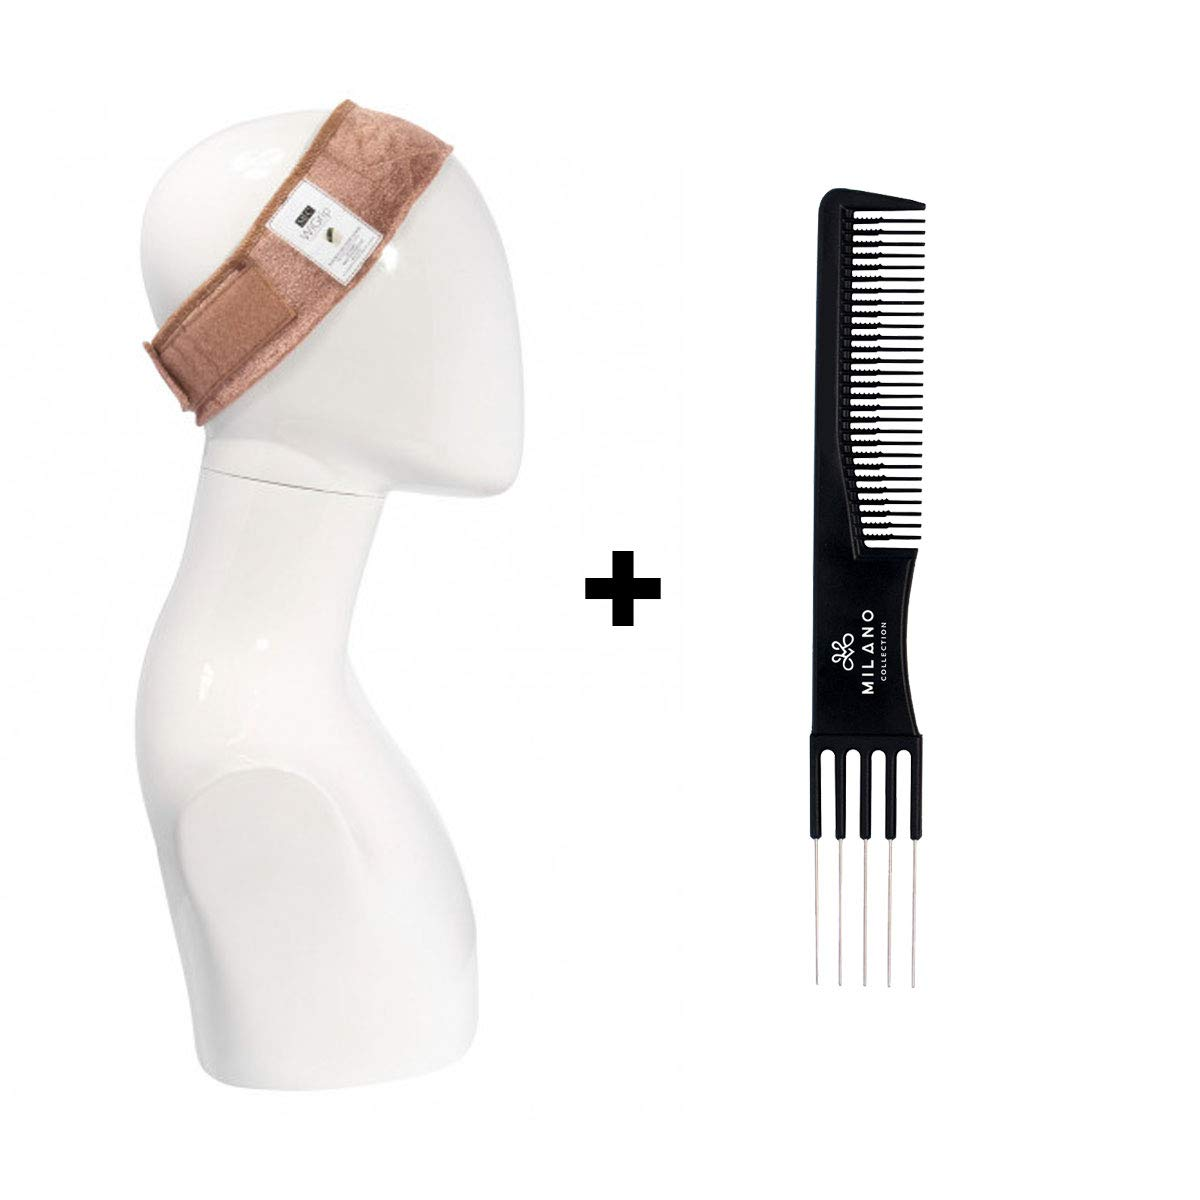 2-PACK Milano Collection ORIGINAL WiGrip Wig Comfort Band (Tan) Plus Free Teasing Comb by MILANO COLLECTION (Image #6)